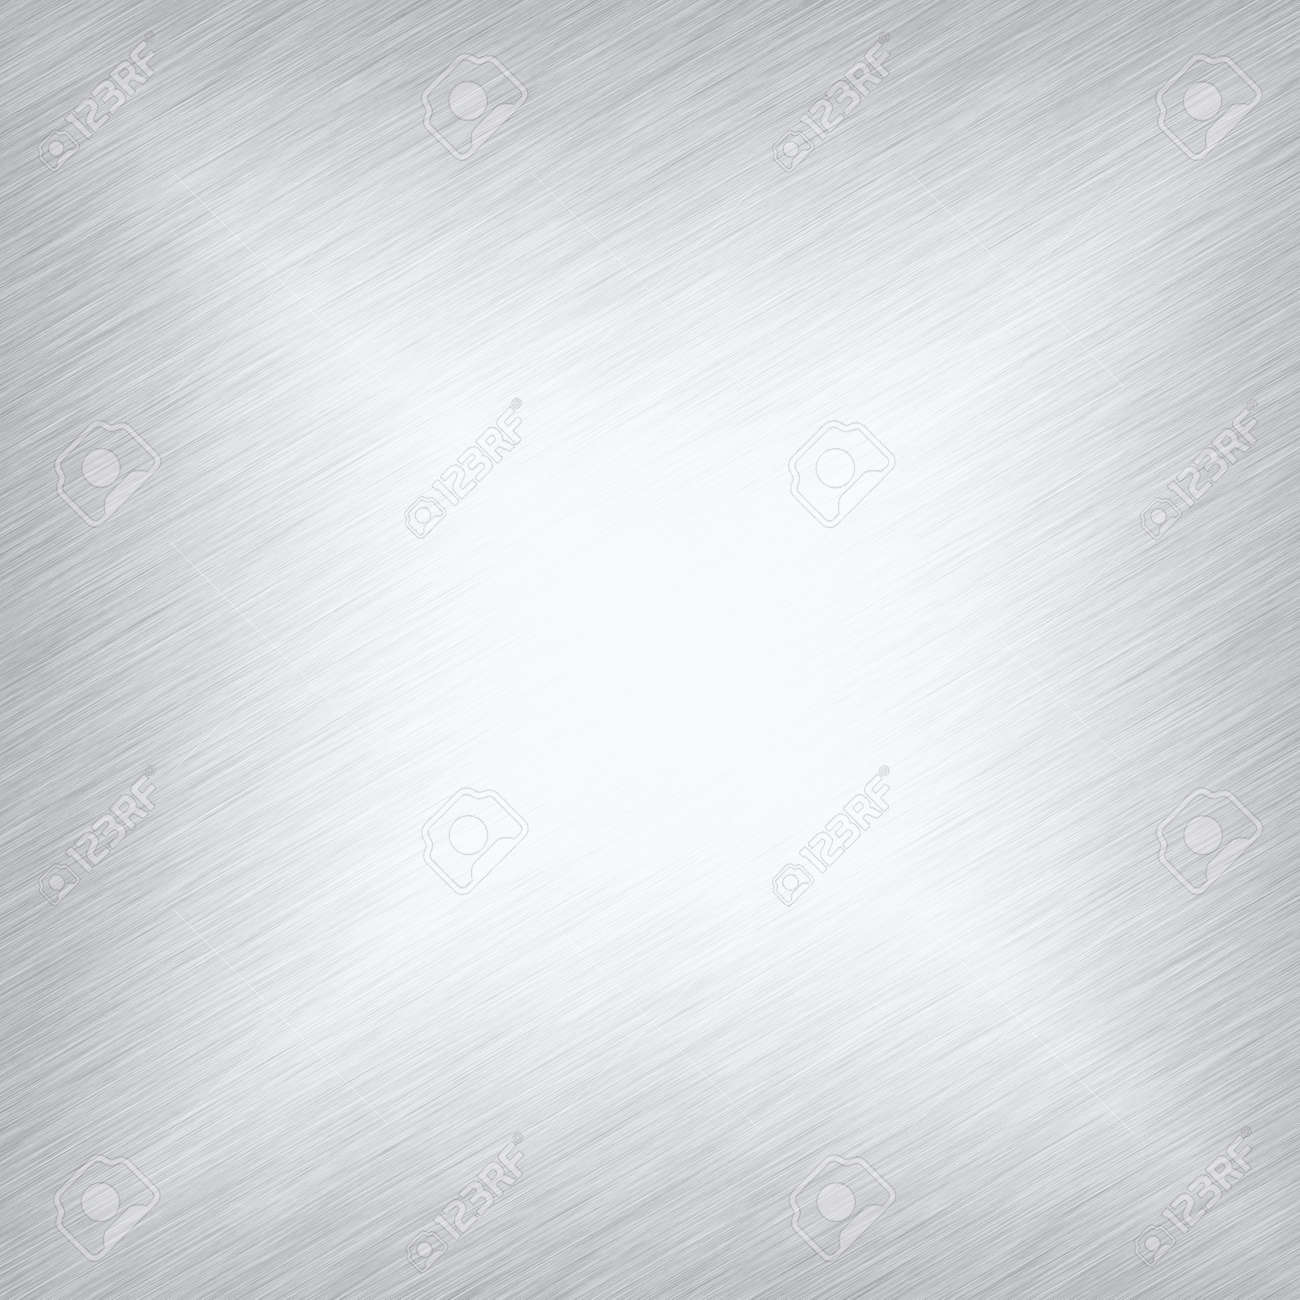 white silver metal texture background with oblique lines pattern to decorative greeting card design Stock Photo - 18931442